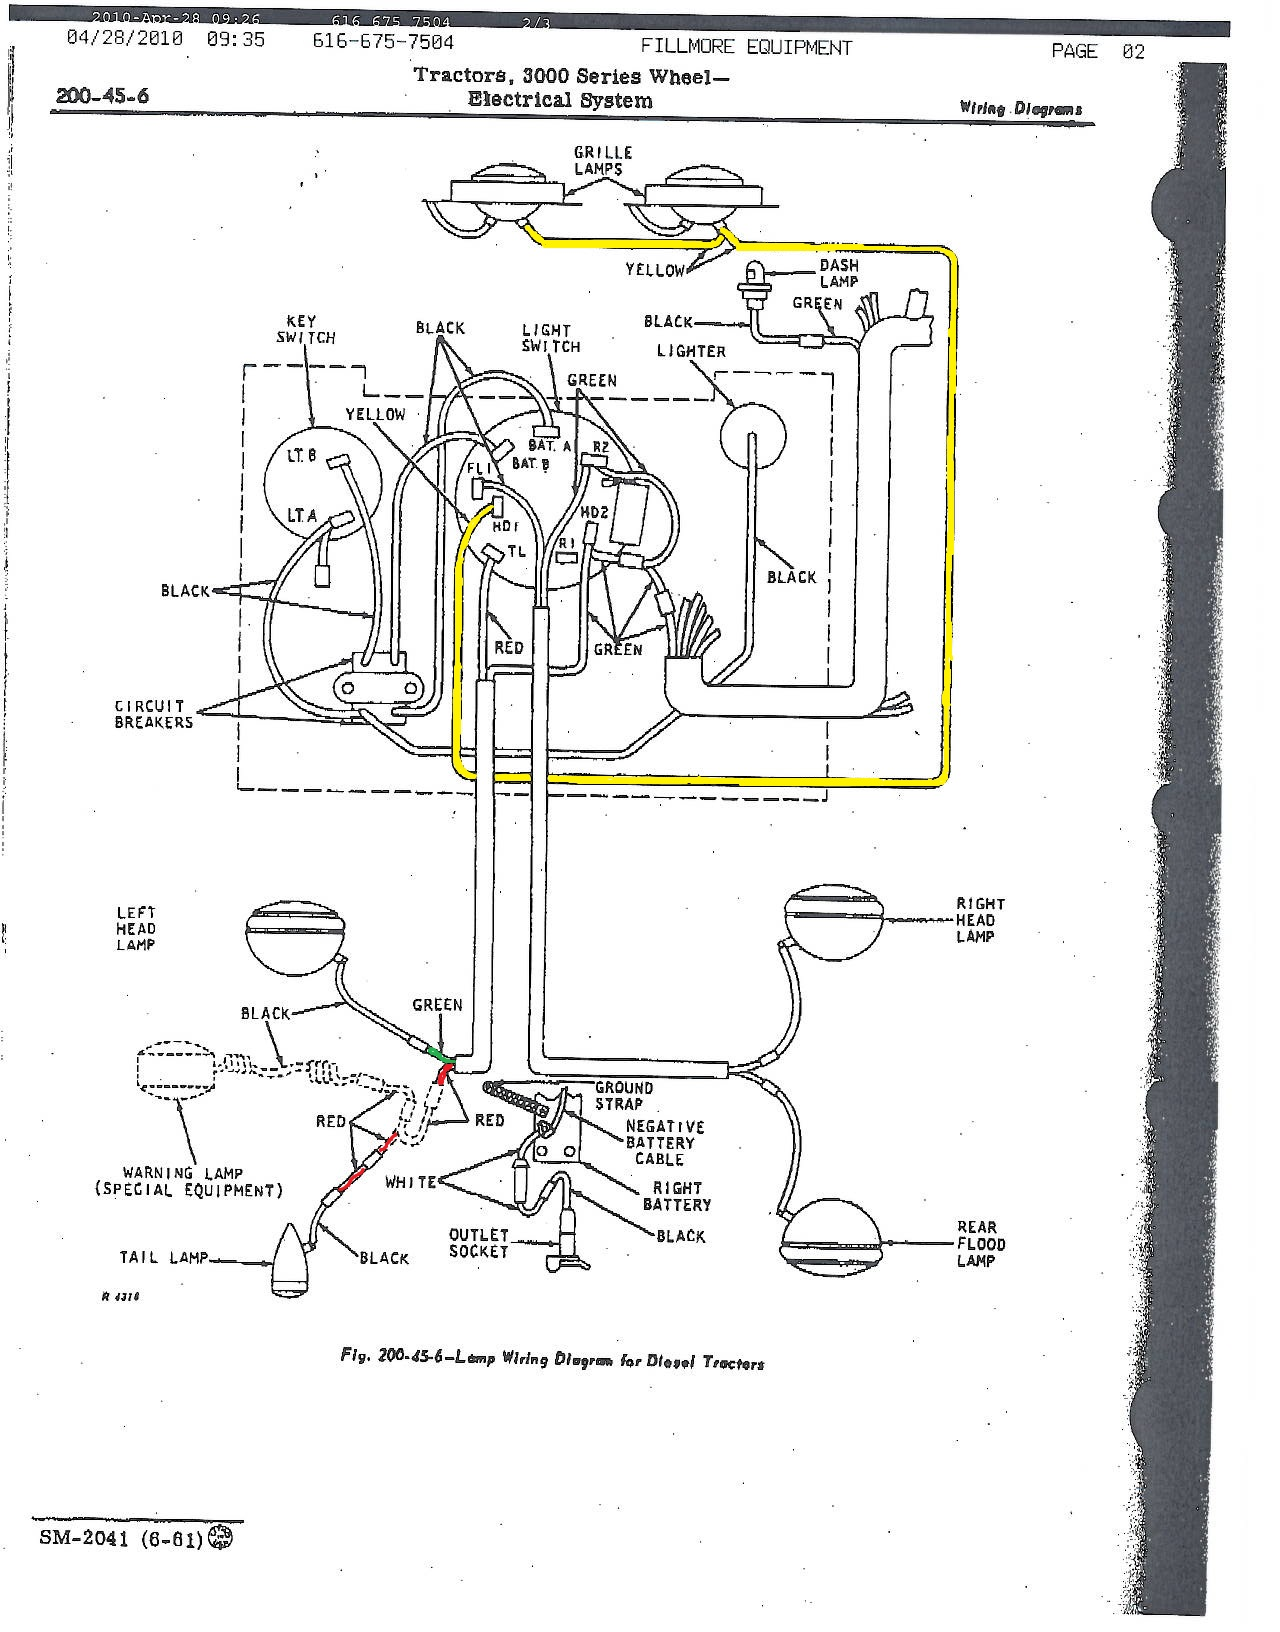 john deere f525 ignition switch wiring diagram start run capacitor house get free image about